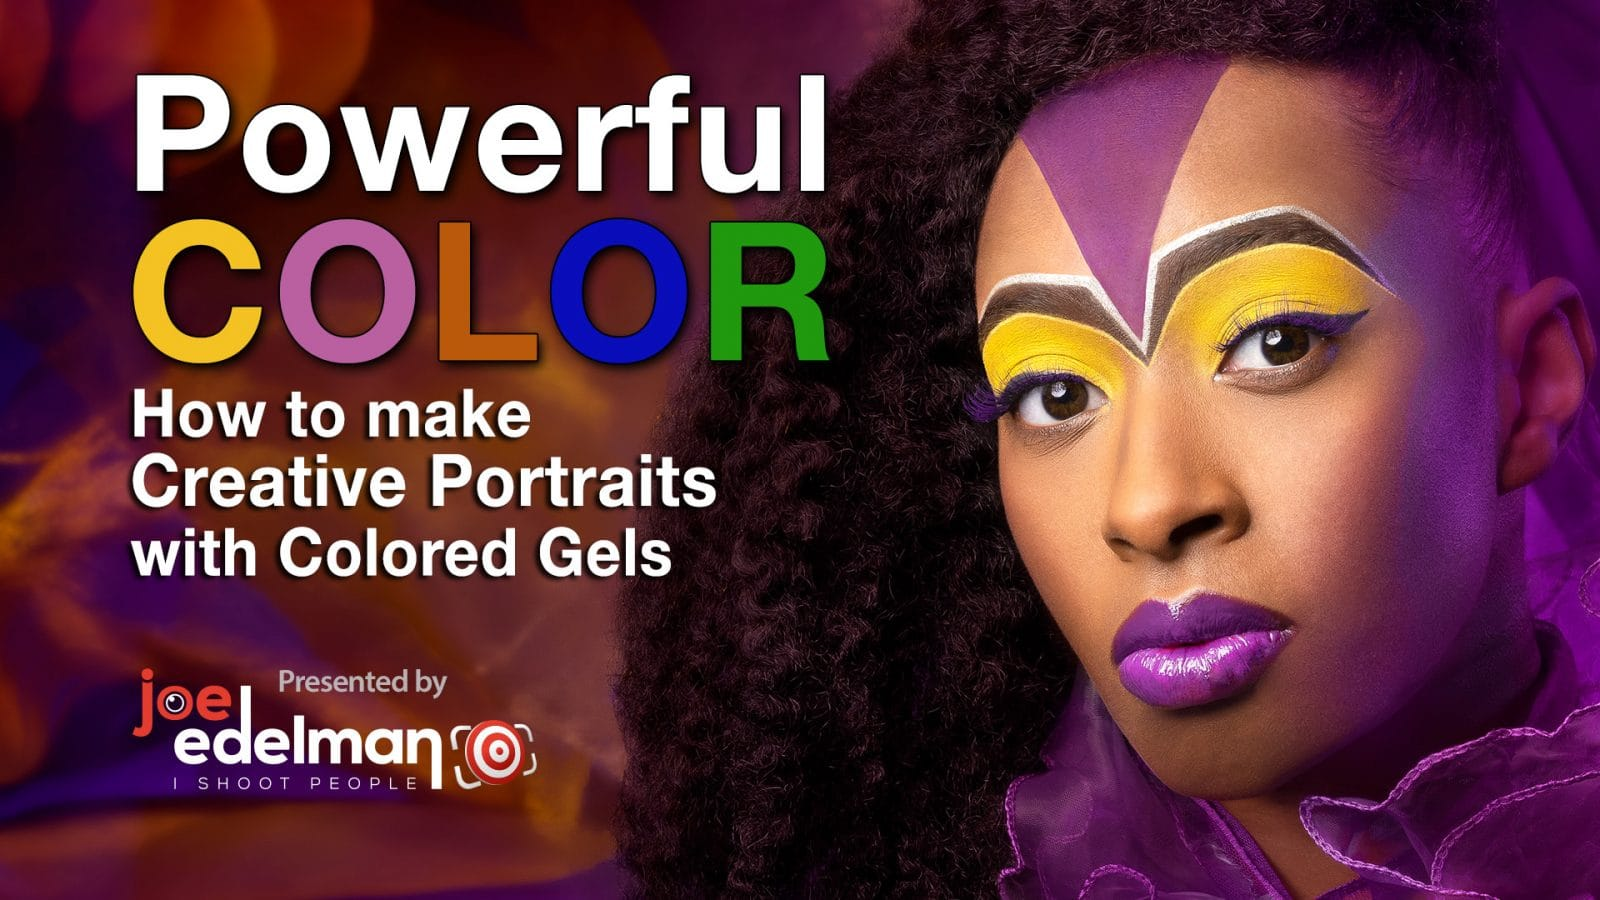 Powerful Color – Creative Portrait Lighting Using Colored Gels